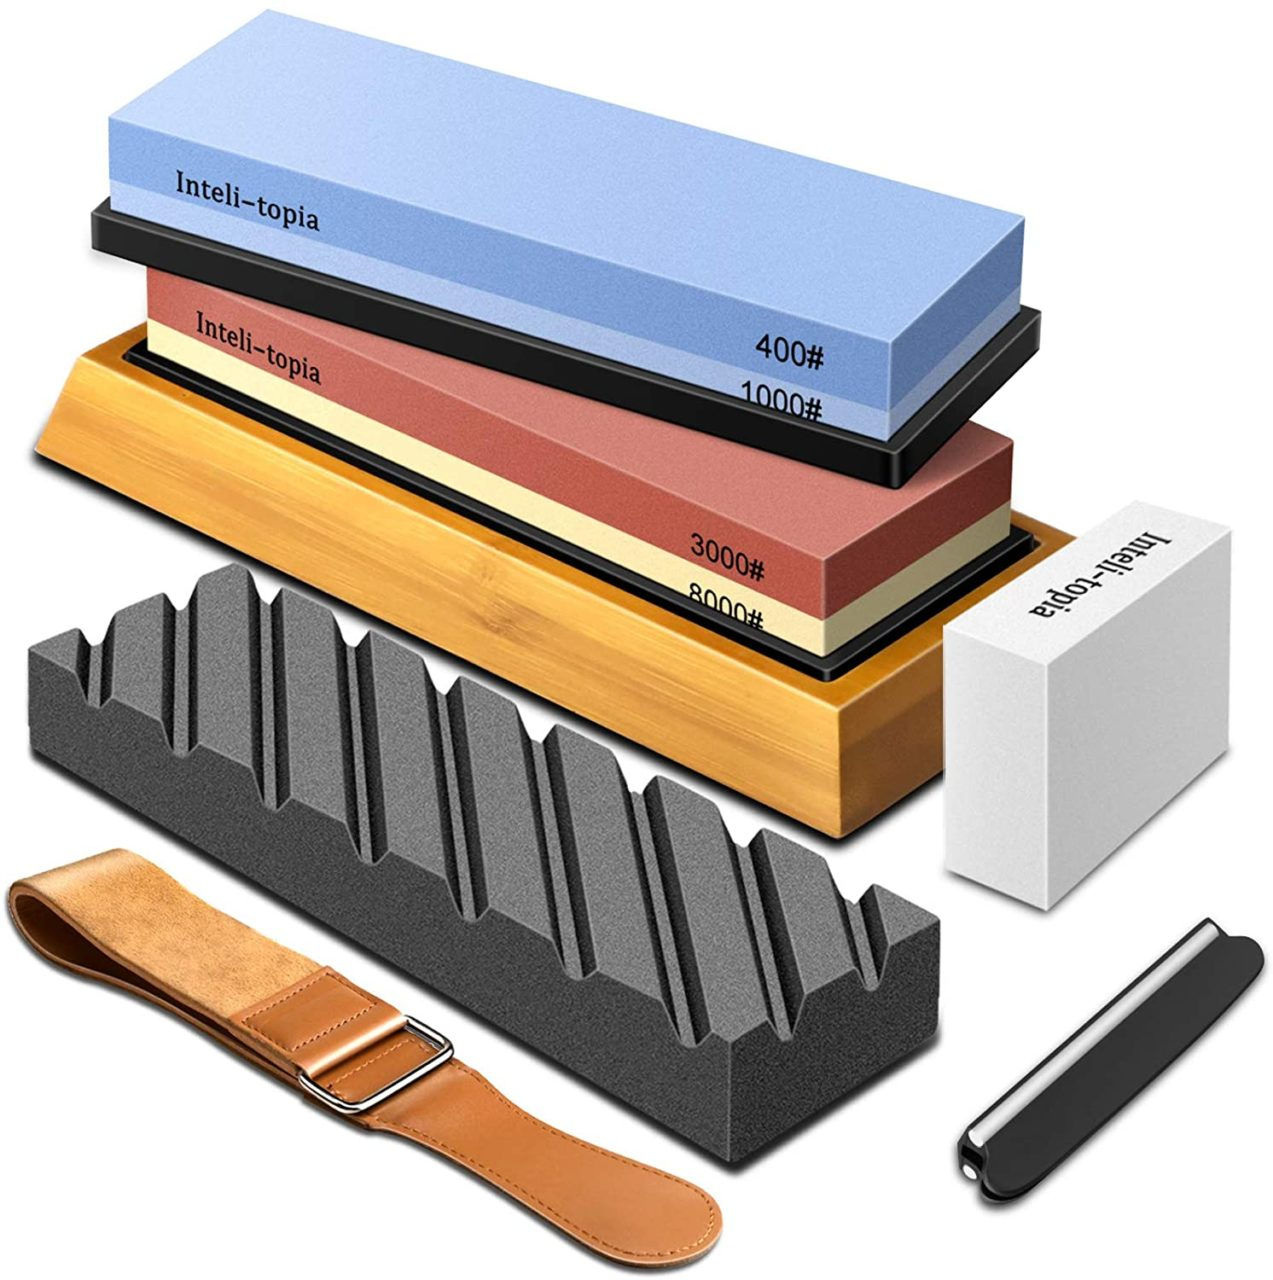 Best Sharpening Stone For A Carpet Knife - Intelitopia Knfie Sharpening Stone Set